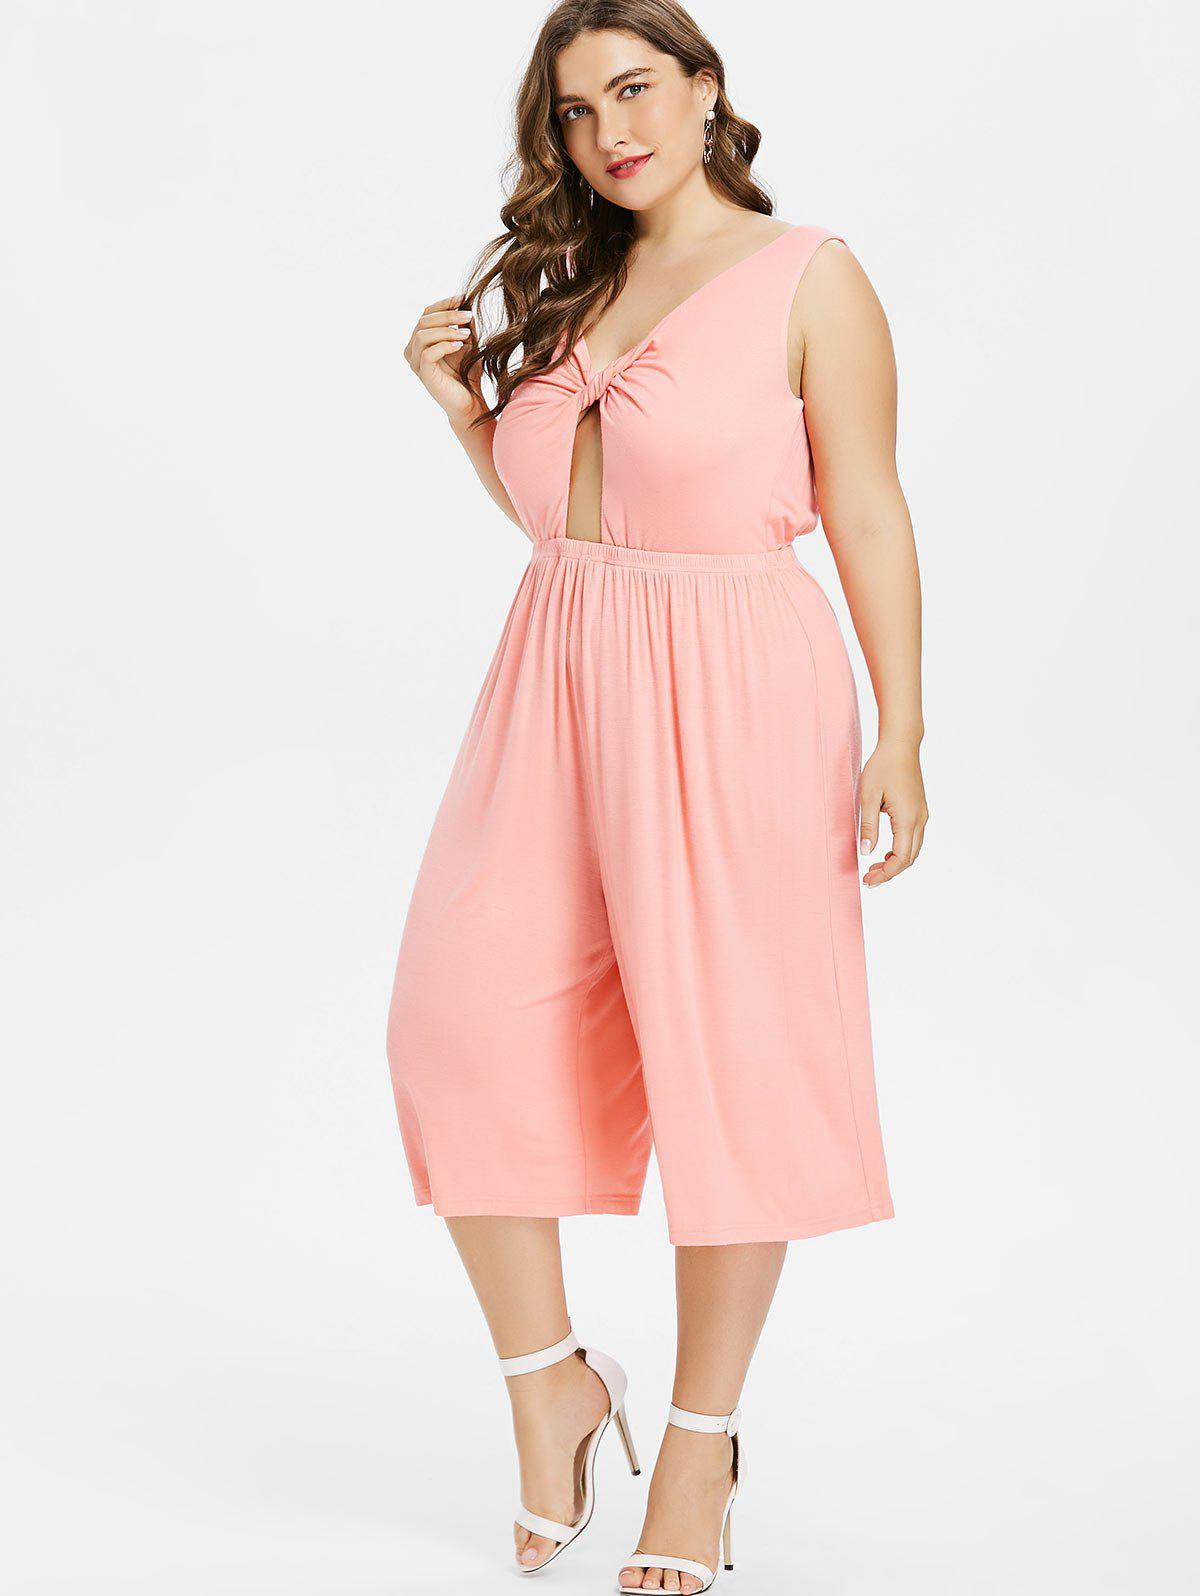 Twist Plus Size Wide Leg Jumpsuit - PINK BUBBLEGUM 4X